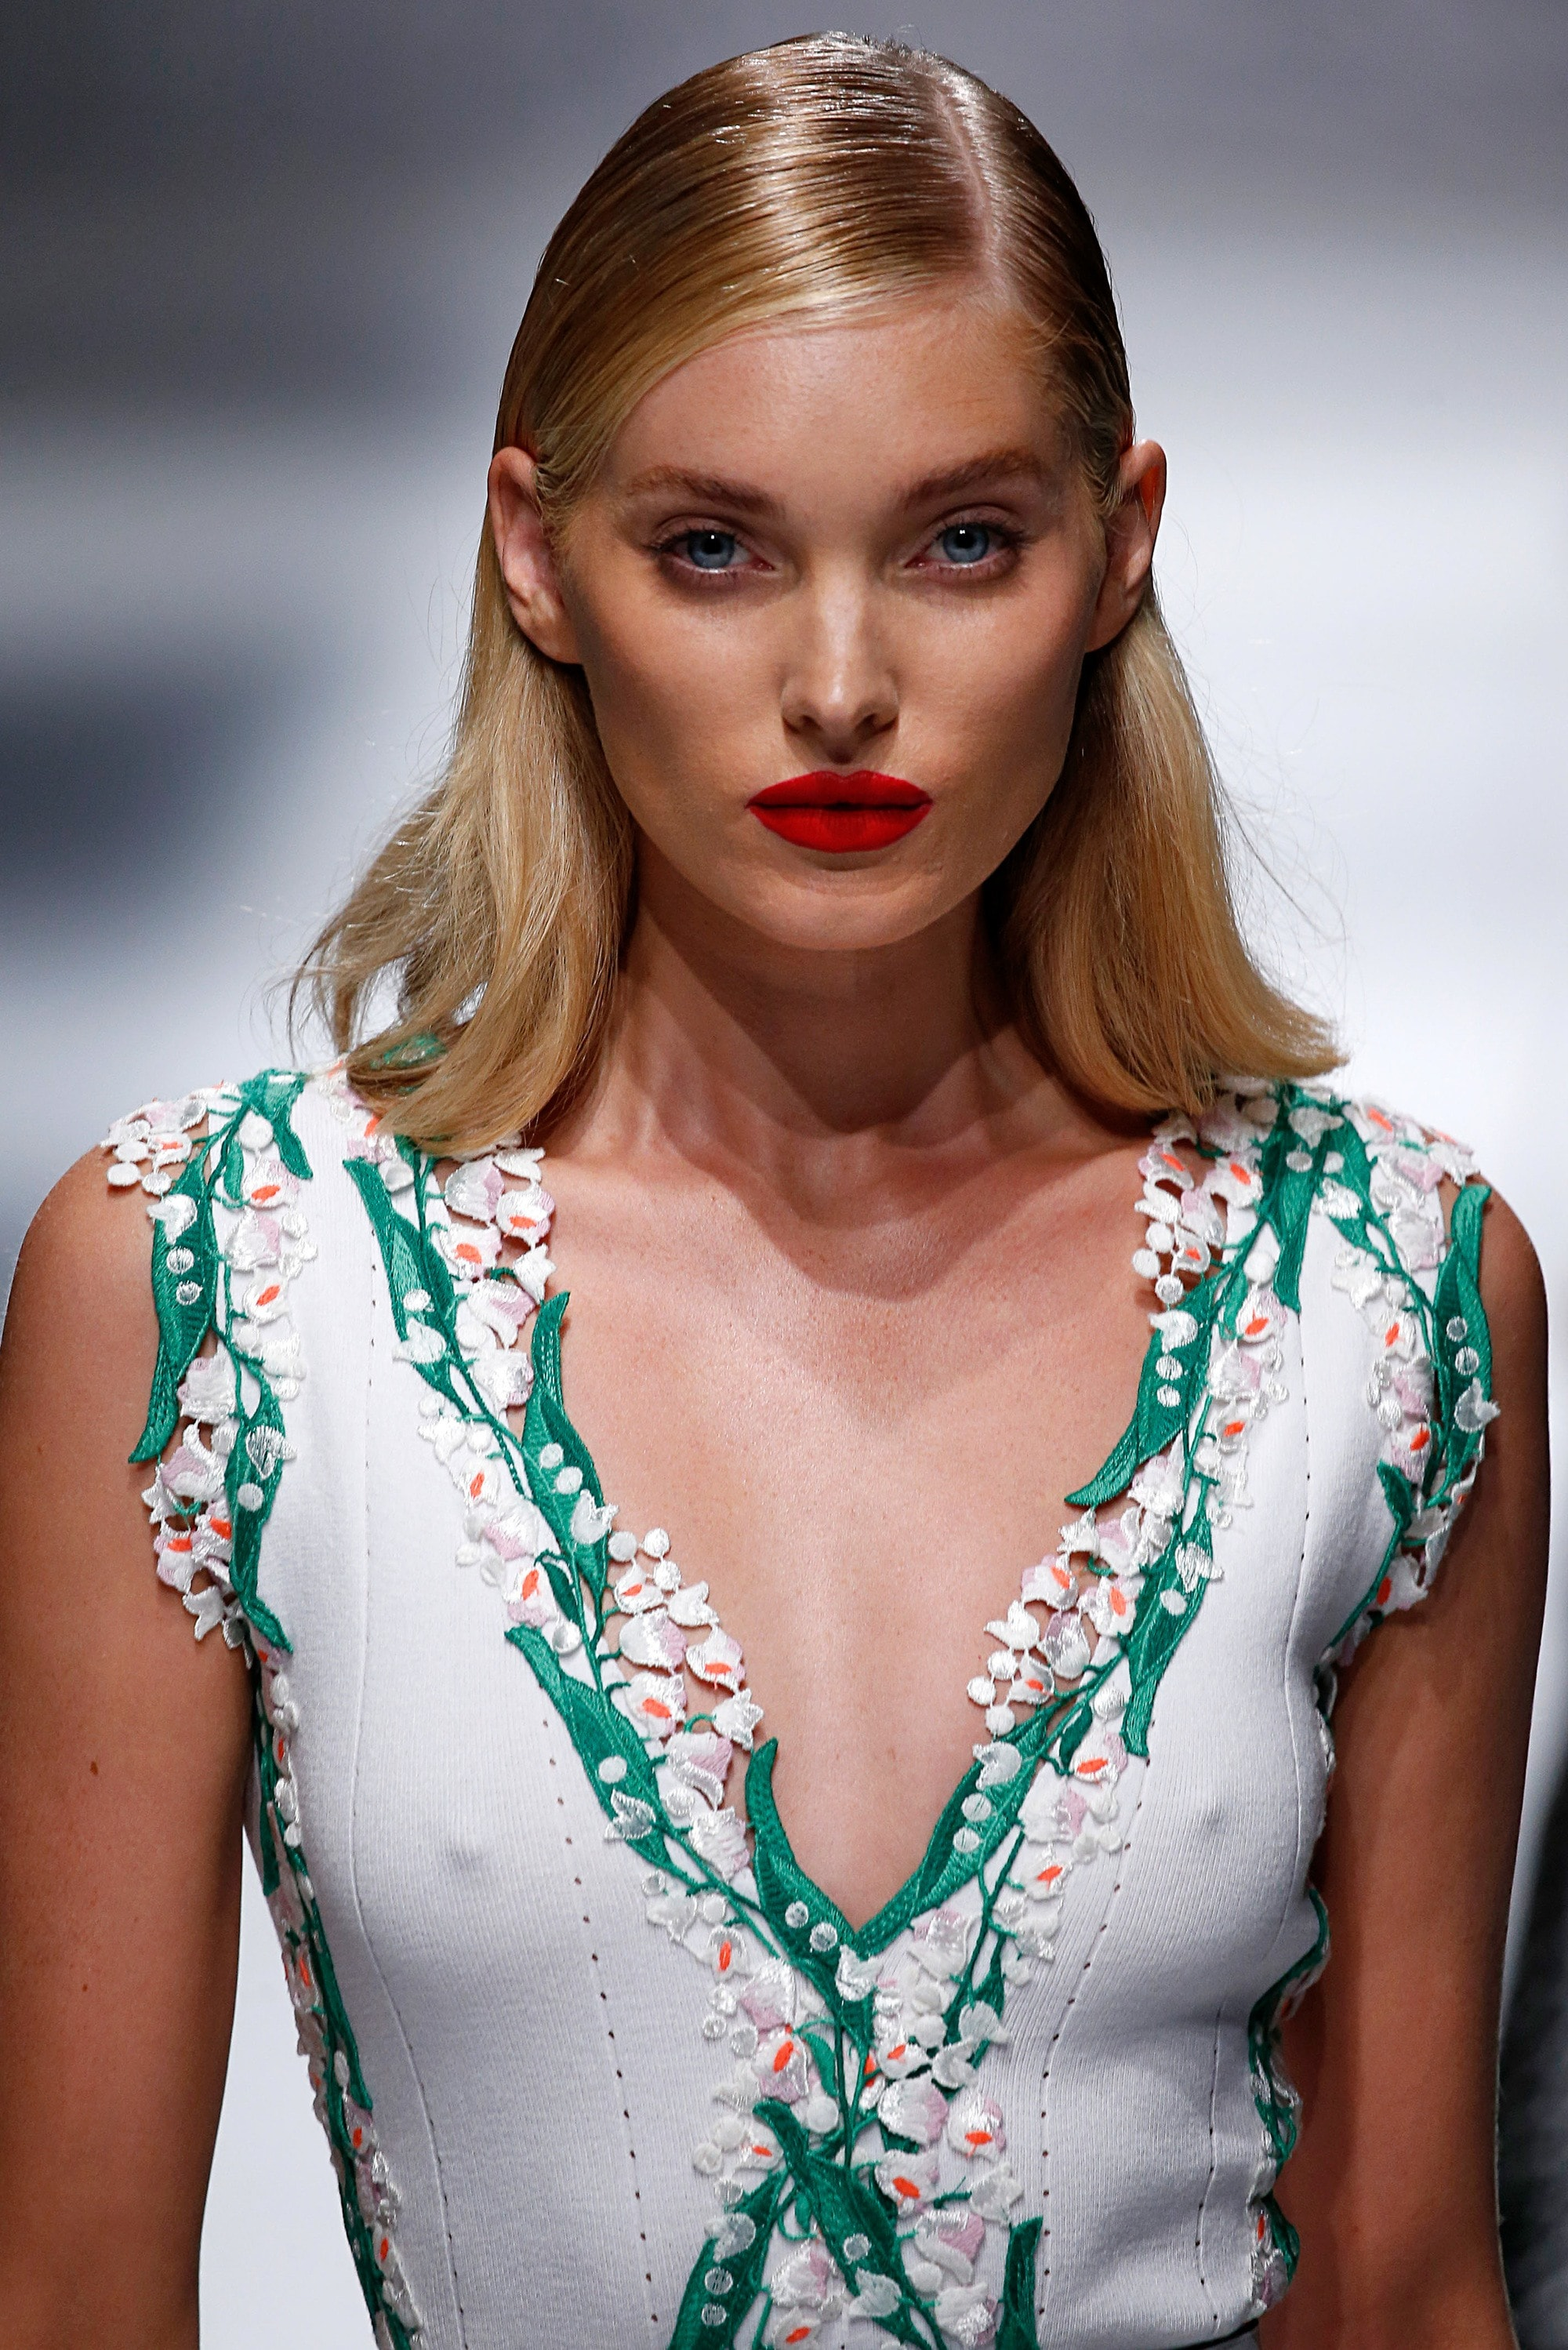 shot of model on the blumarine runway with sleek deep side part hairstyle